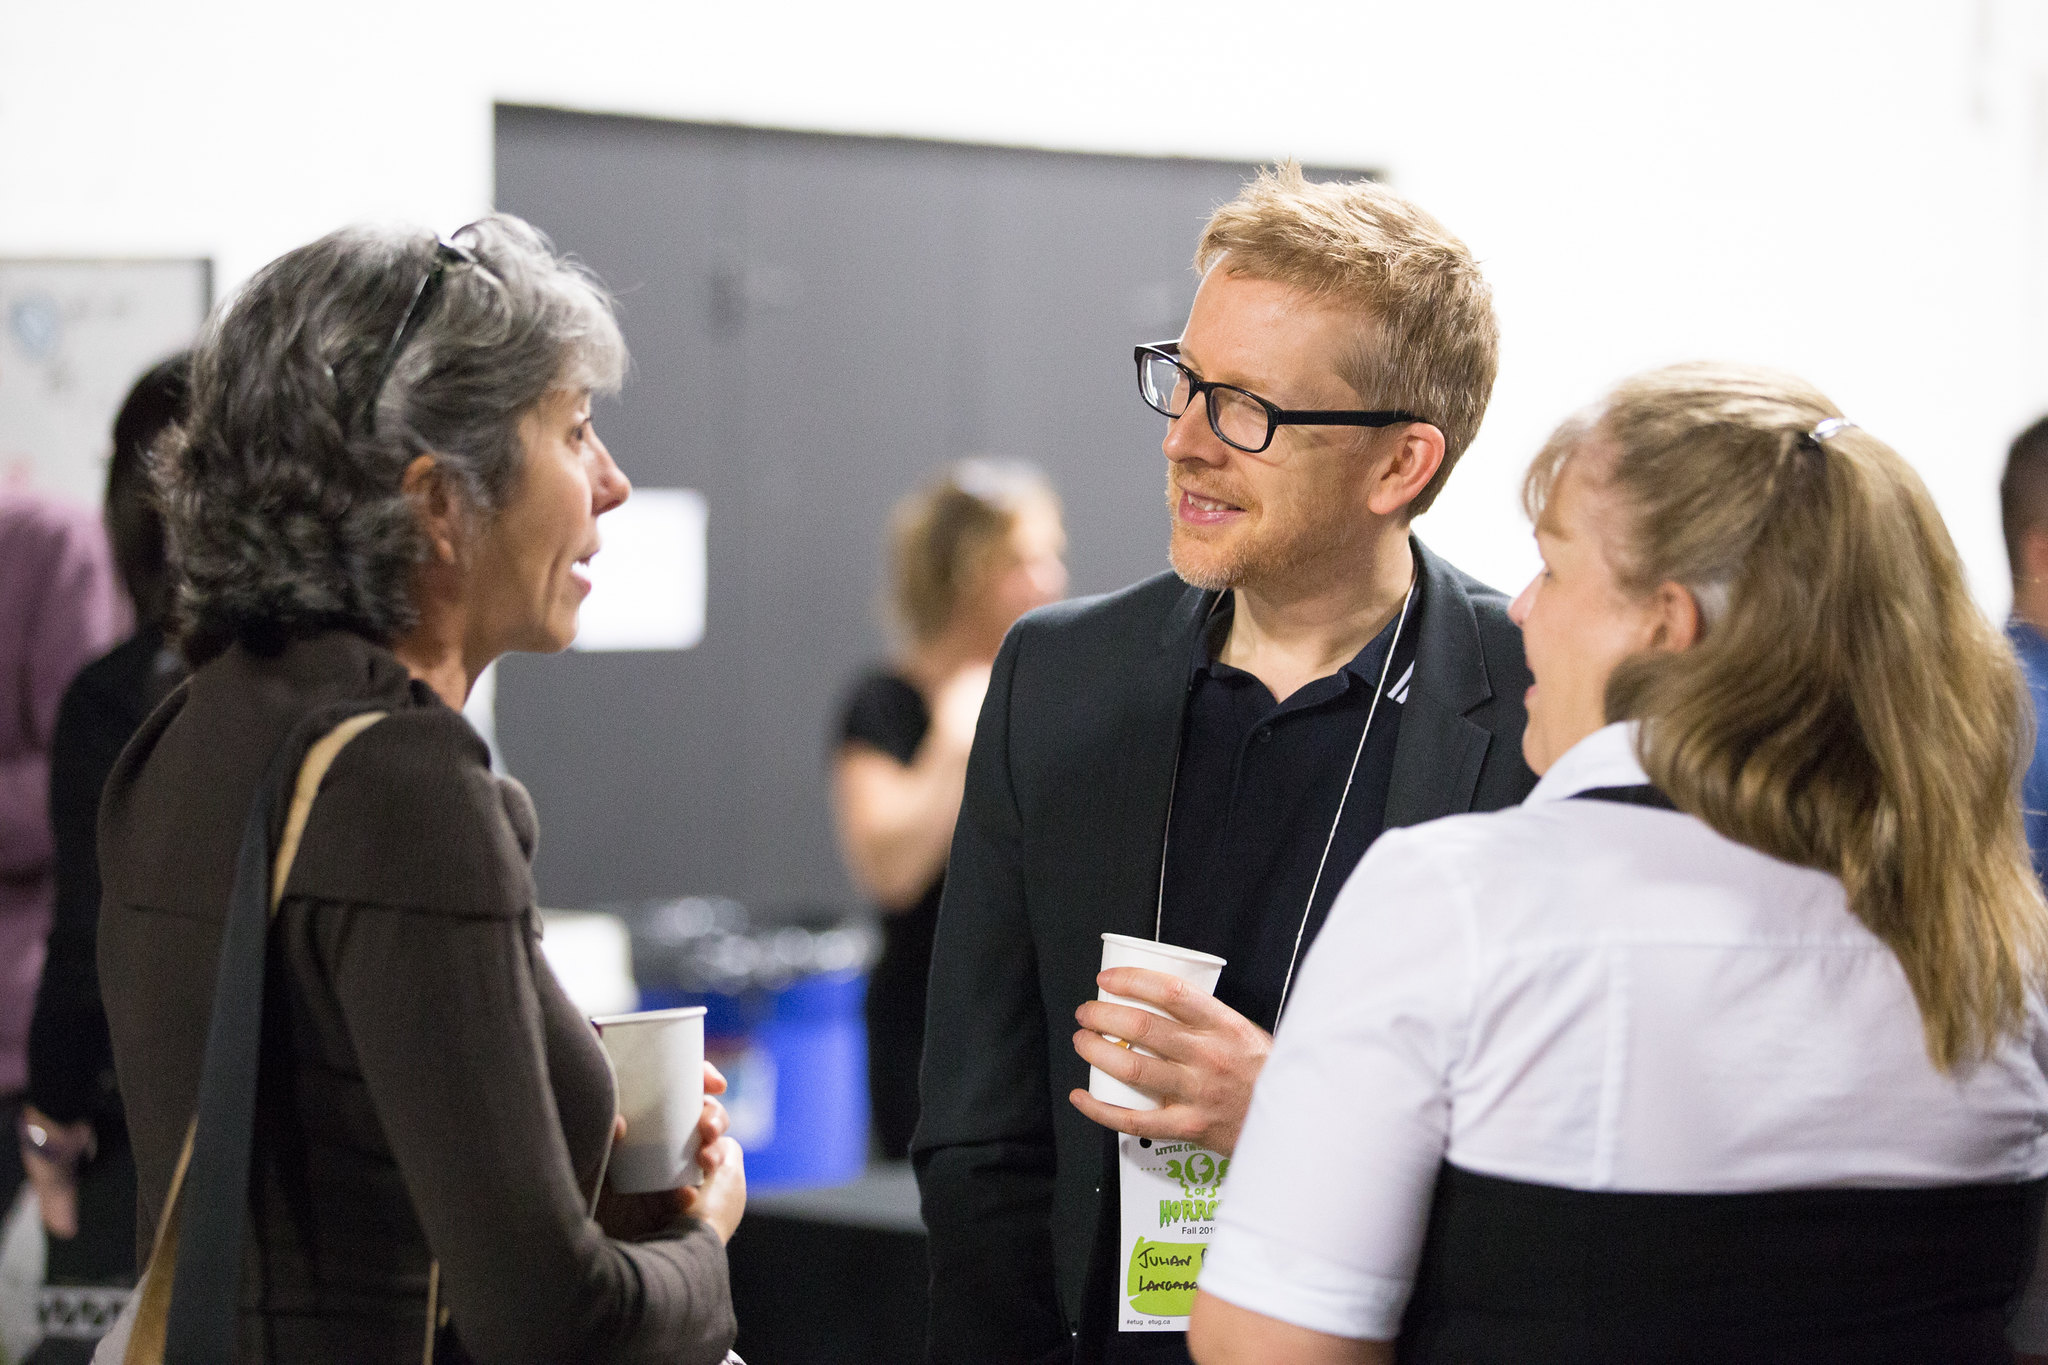 Group of three people at a conference talking informally